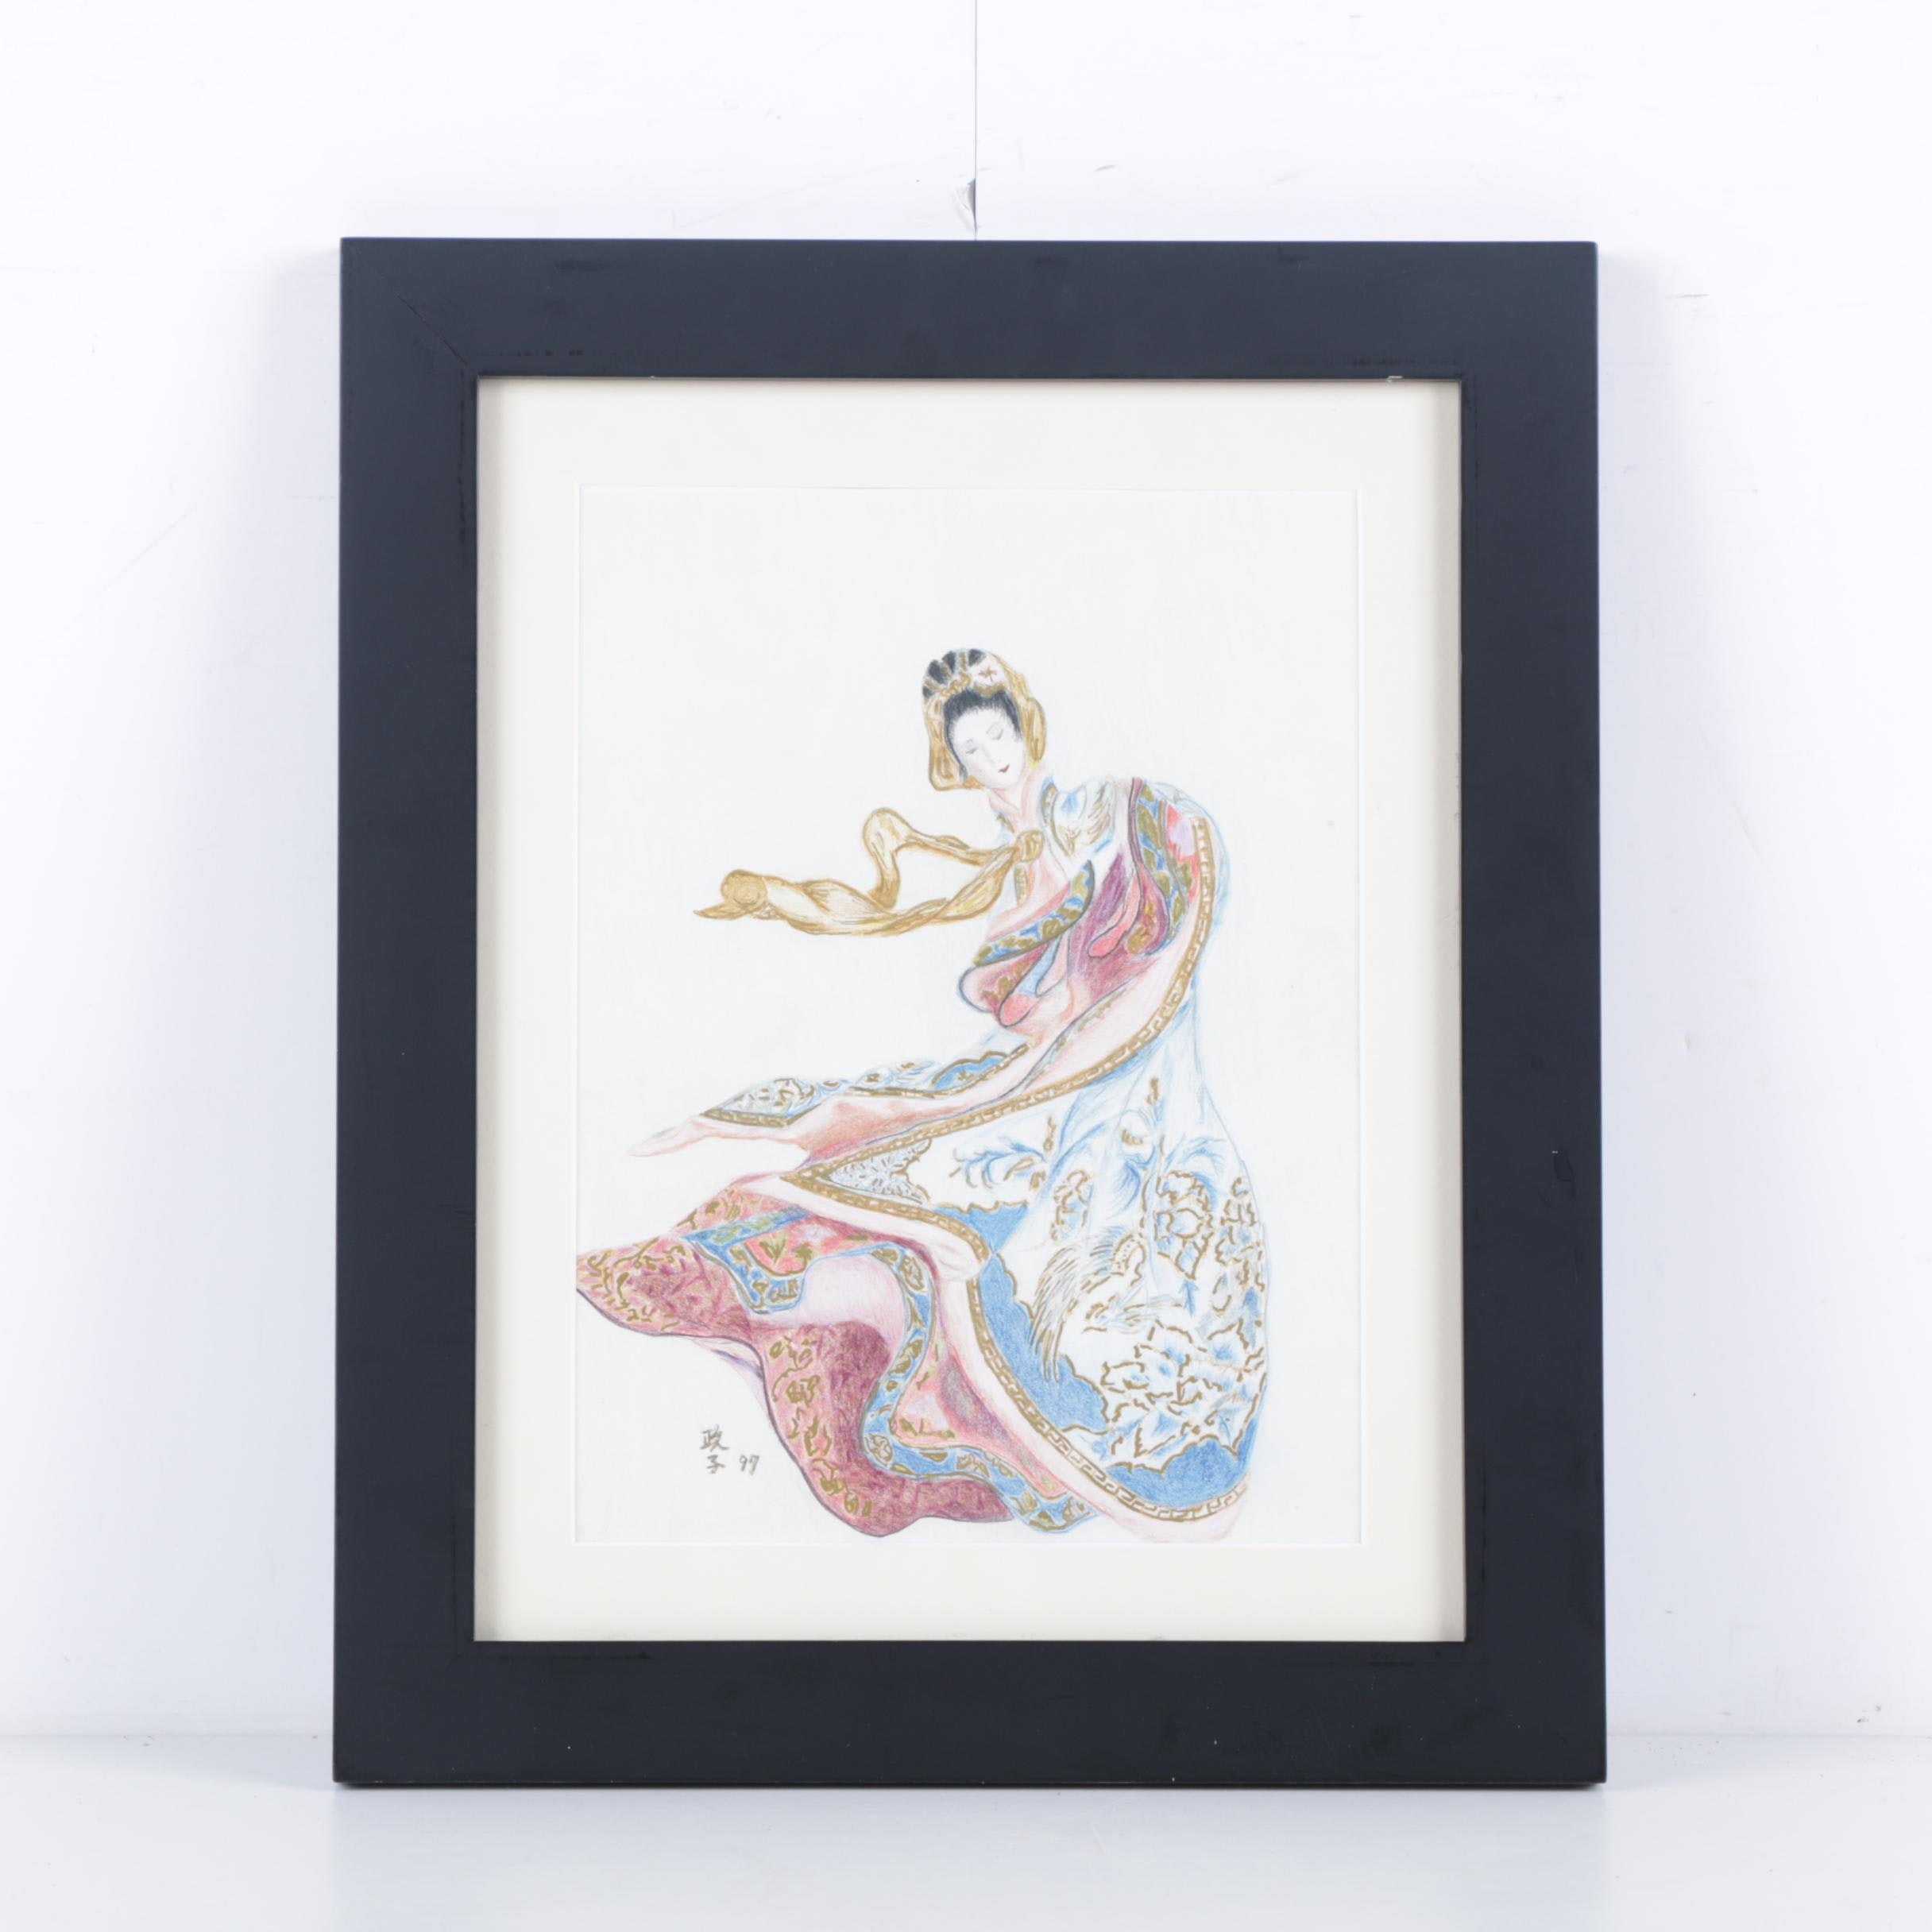 Colored Pencil Drawing on Paper of East Asian Inspired Figure